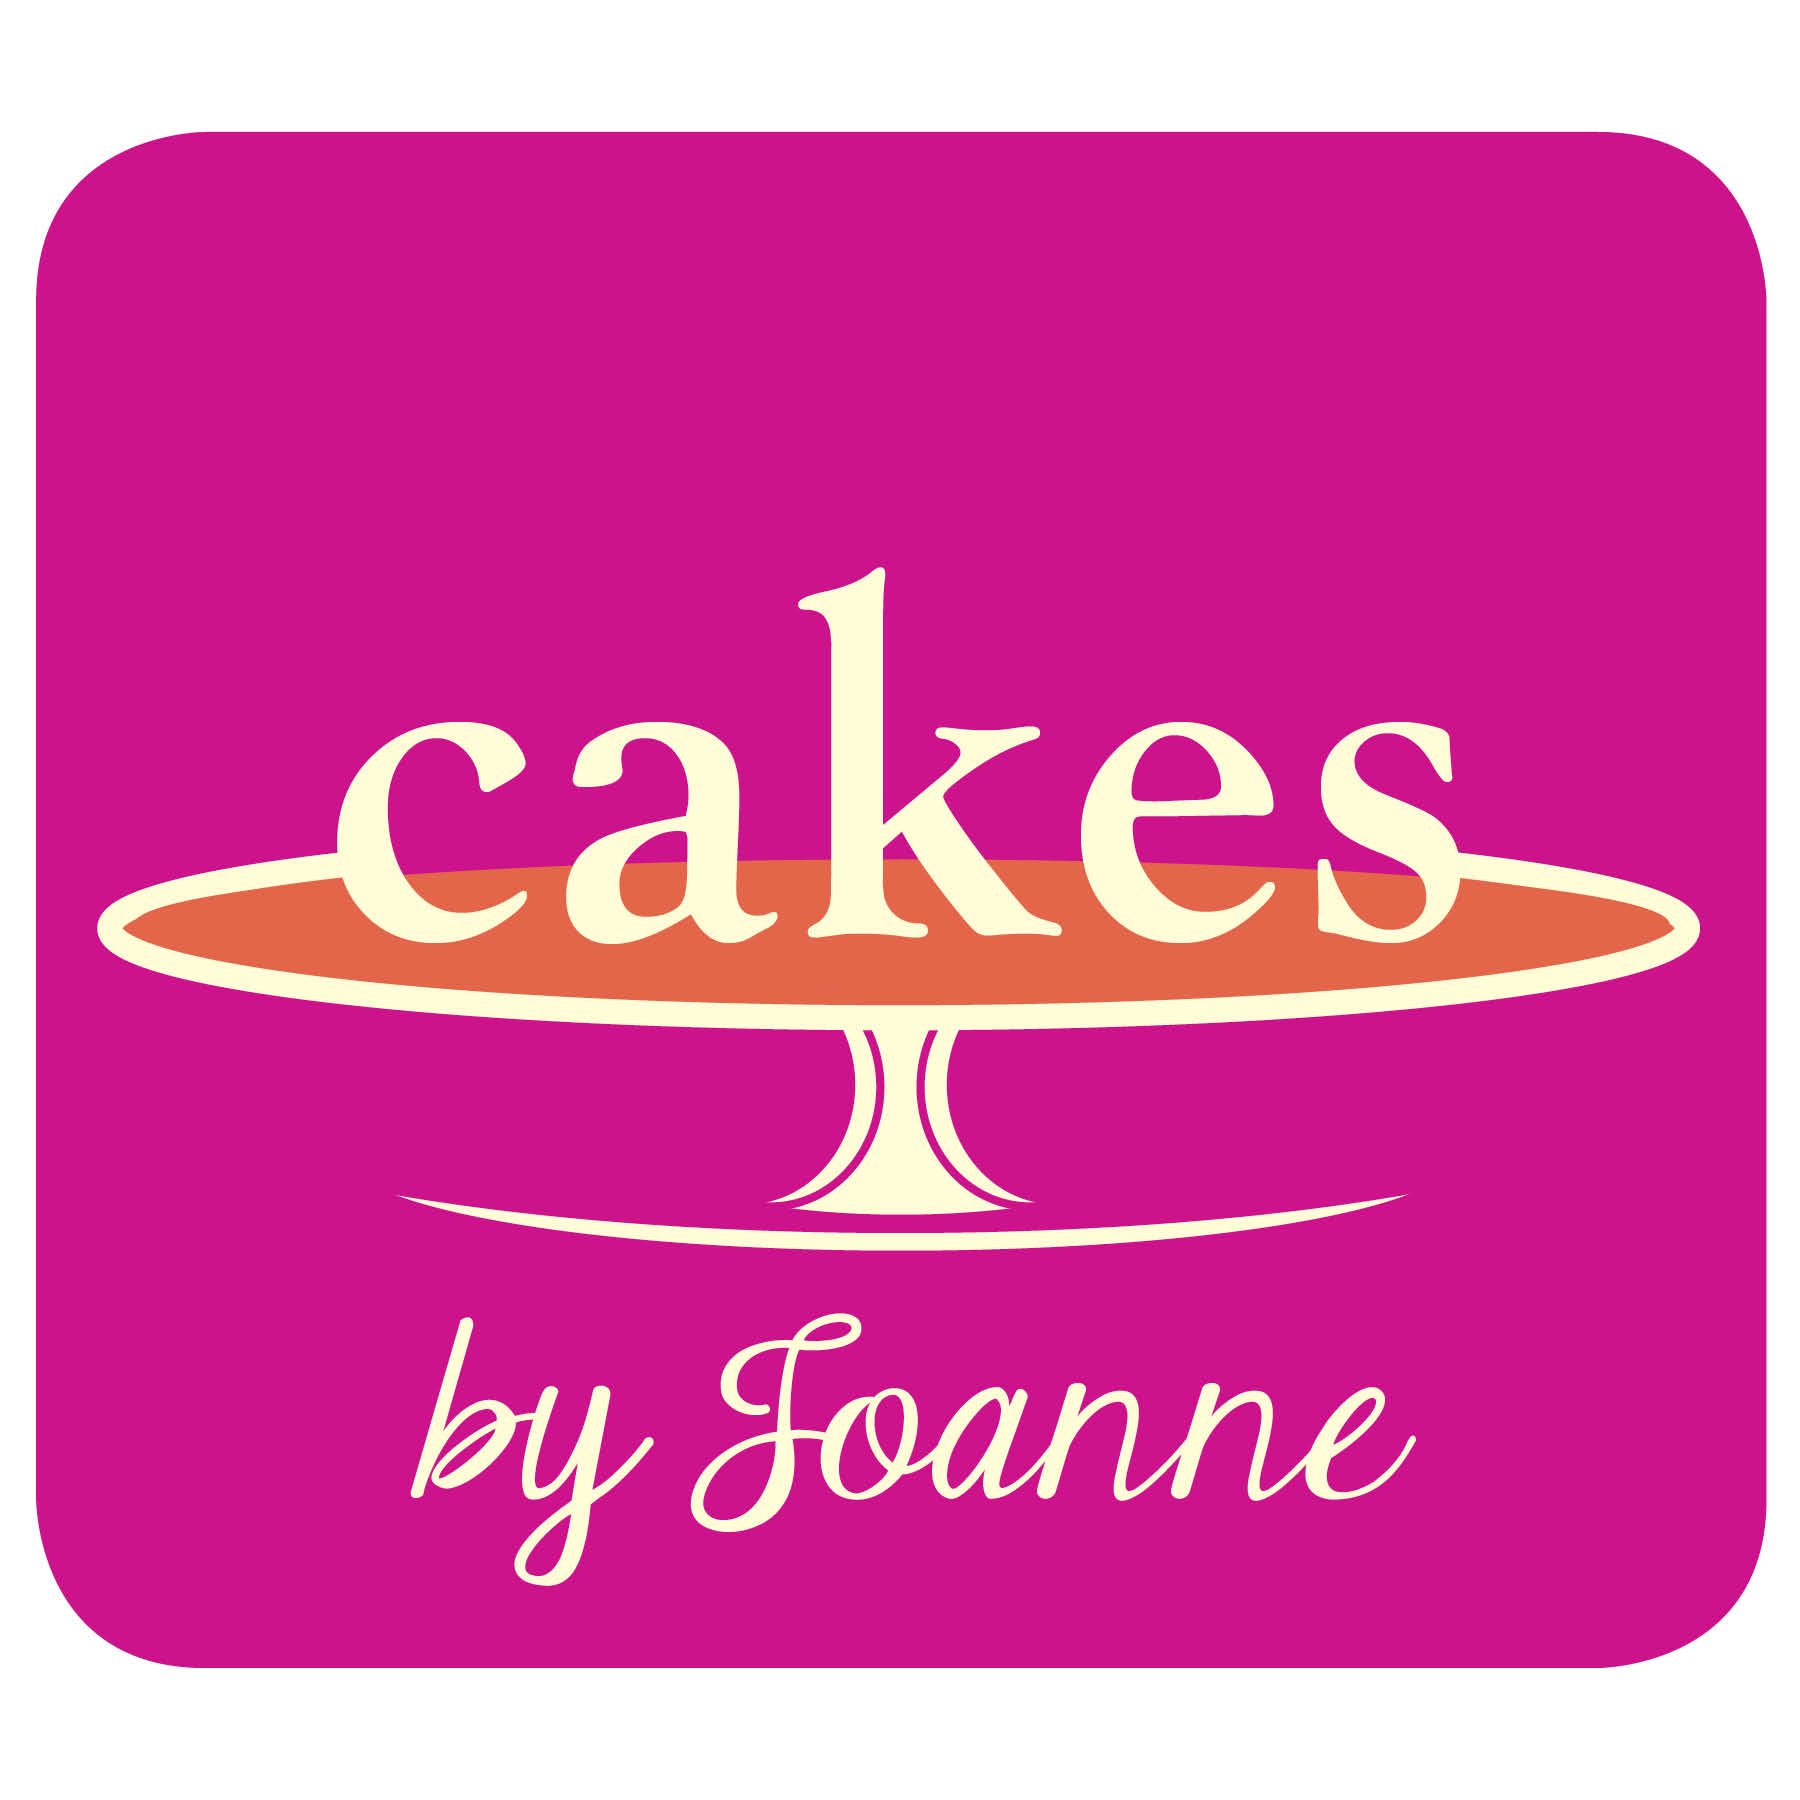 Cakes by Joanne